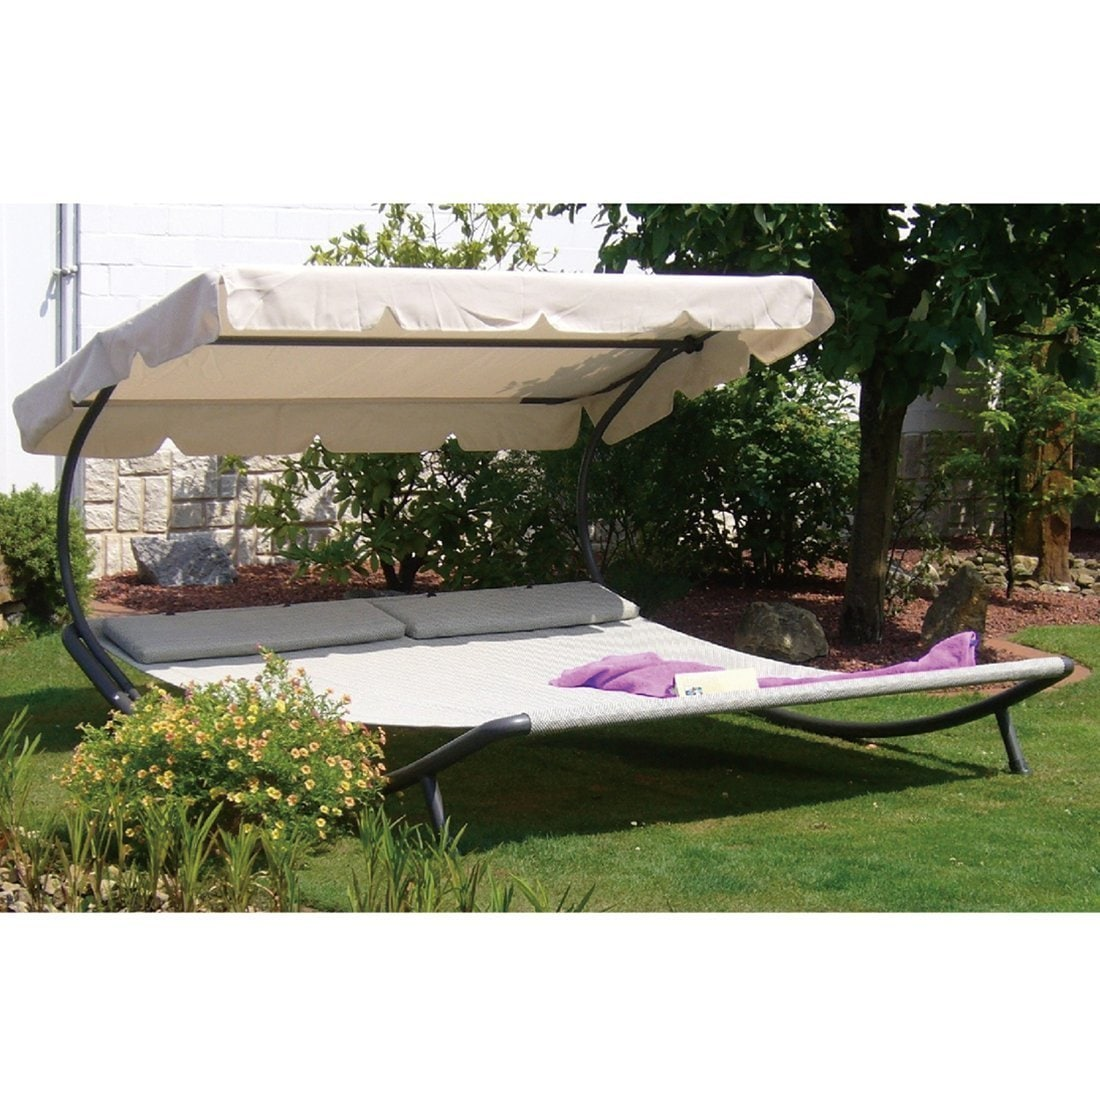 with hammock sorara living gondola portable cover green shade shop outdoor